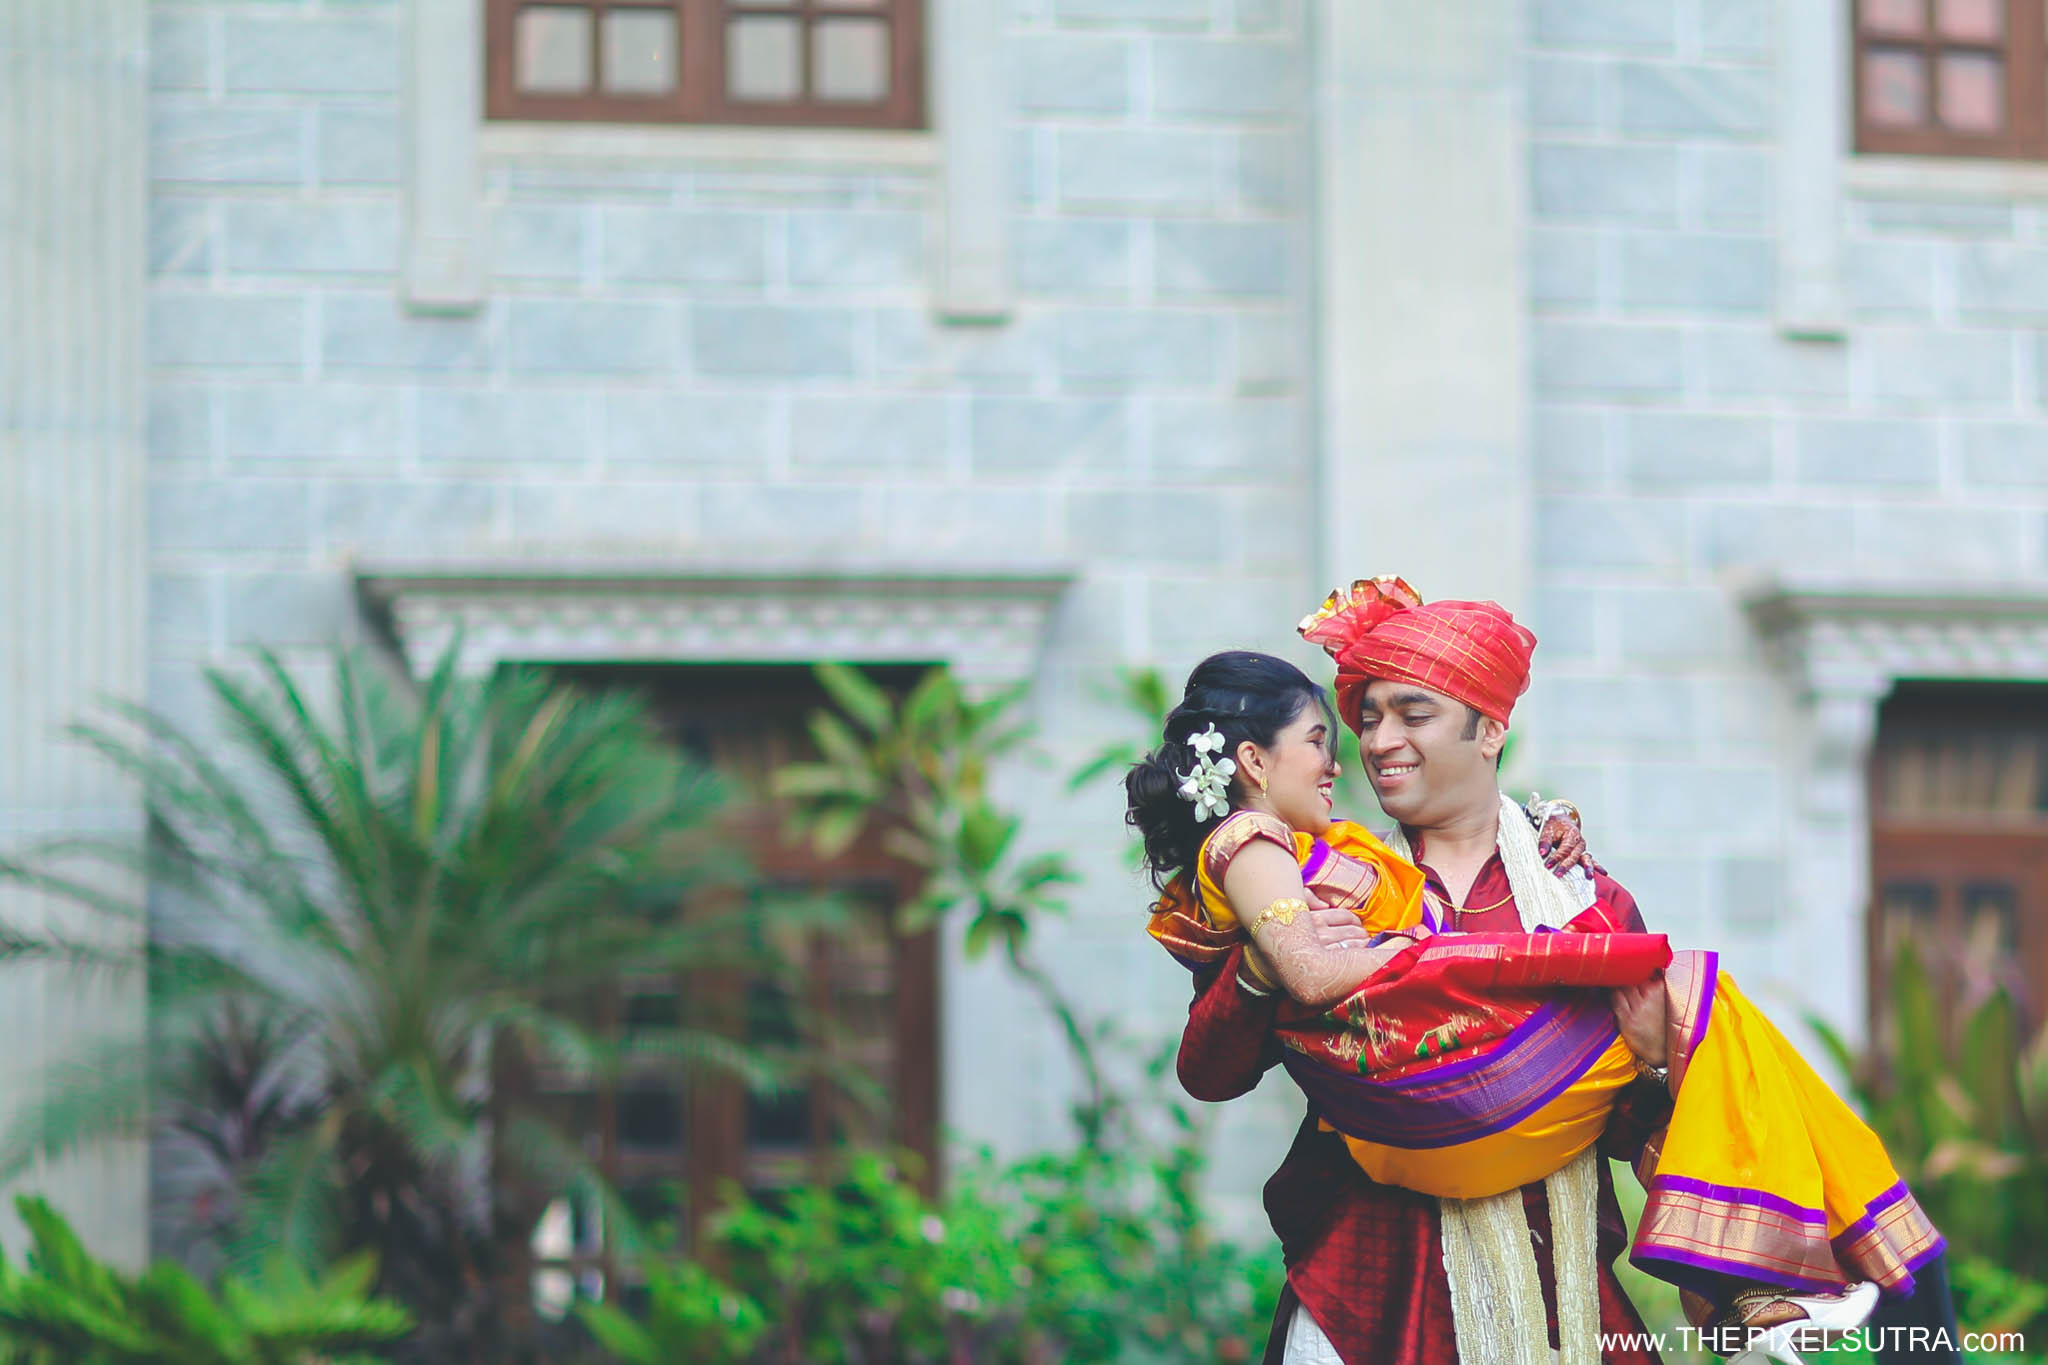 The Pixel Sutra Nachiket x Priyanka Candid Wedding photographer Mumbai Best  (51).jpg